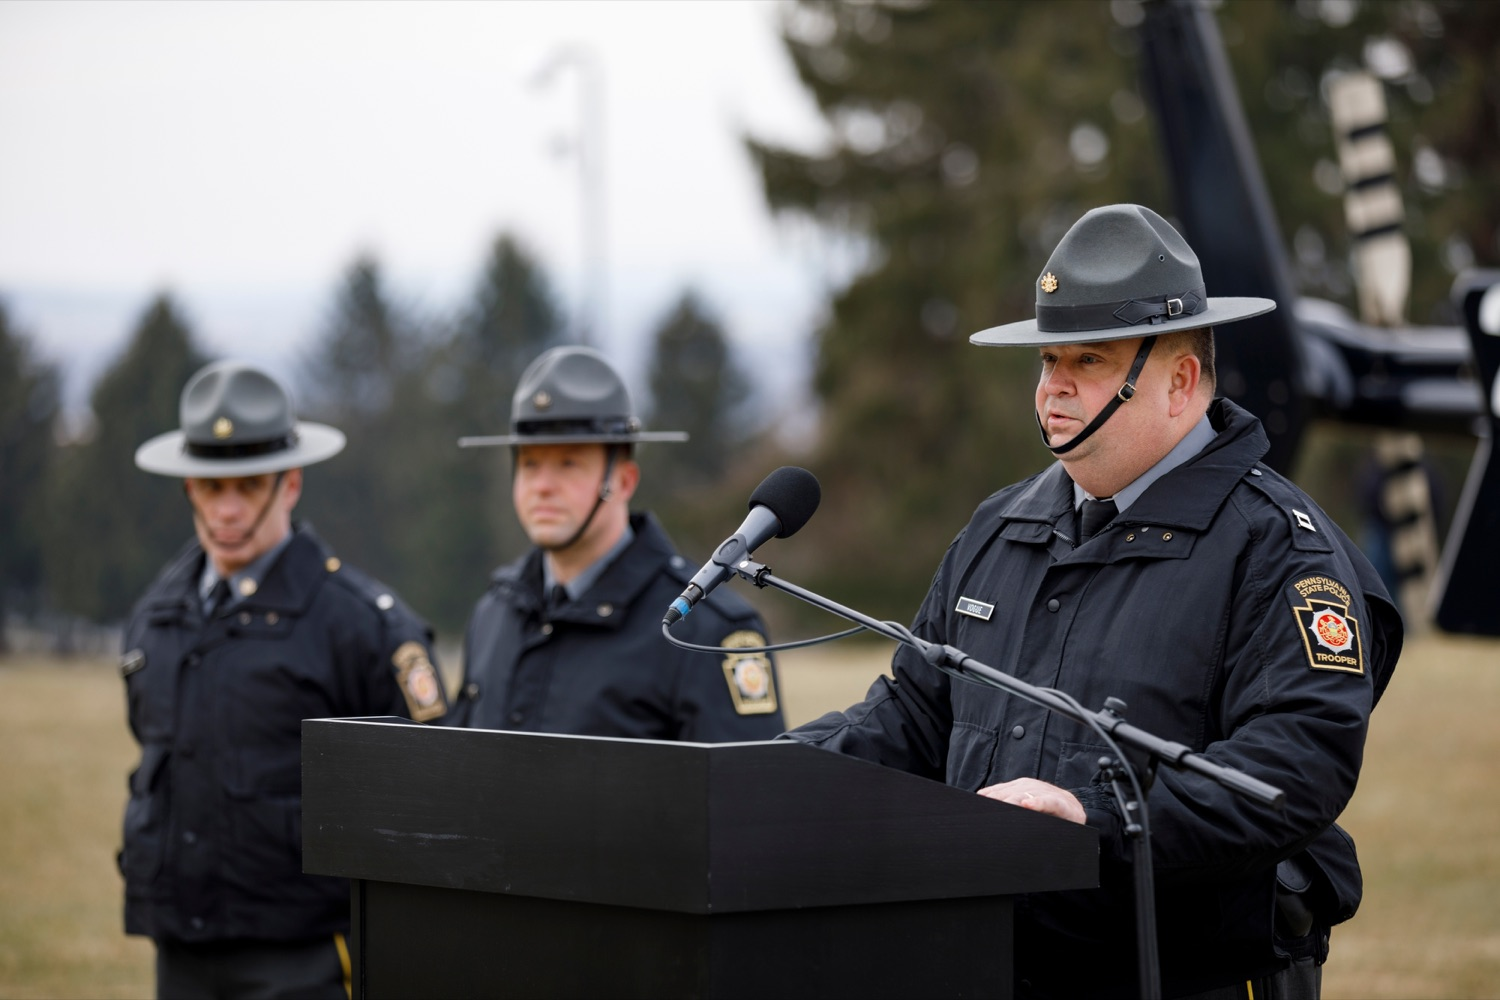 "<a href=""https://filesource.wostreaming.net/commonwealthofpa/photo/17706_DOH_Drone_Safety_NK_004.JPG"" target=""_blank"">⇣ Download Photo<br></a>Pennsylvania State Police Capt. Gary Vogue, director of the Special Service Division of the Pennsylvania State Police Bureau of Emergency and Special Operations, speaks during a press conference, which highlighted the danger drones pose to helicopters in emergency situations, at the Pennsylvania State Police Academy in Hershey on Friday, January 31, 2020."